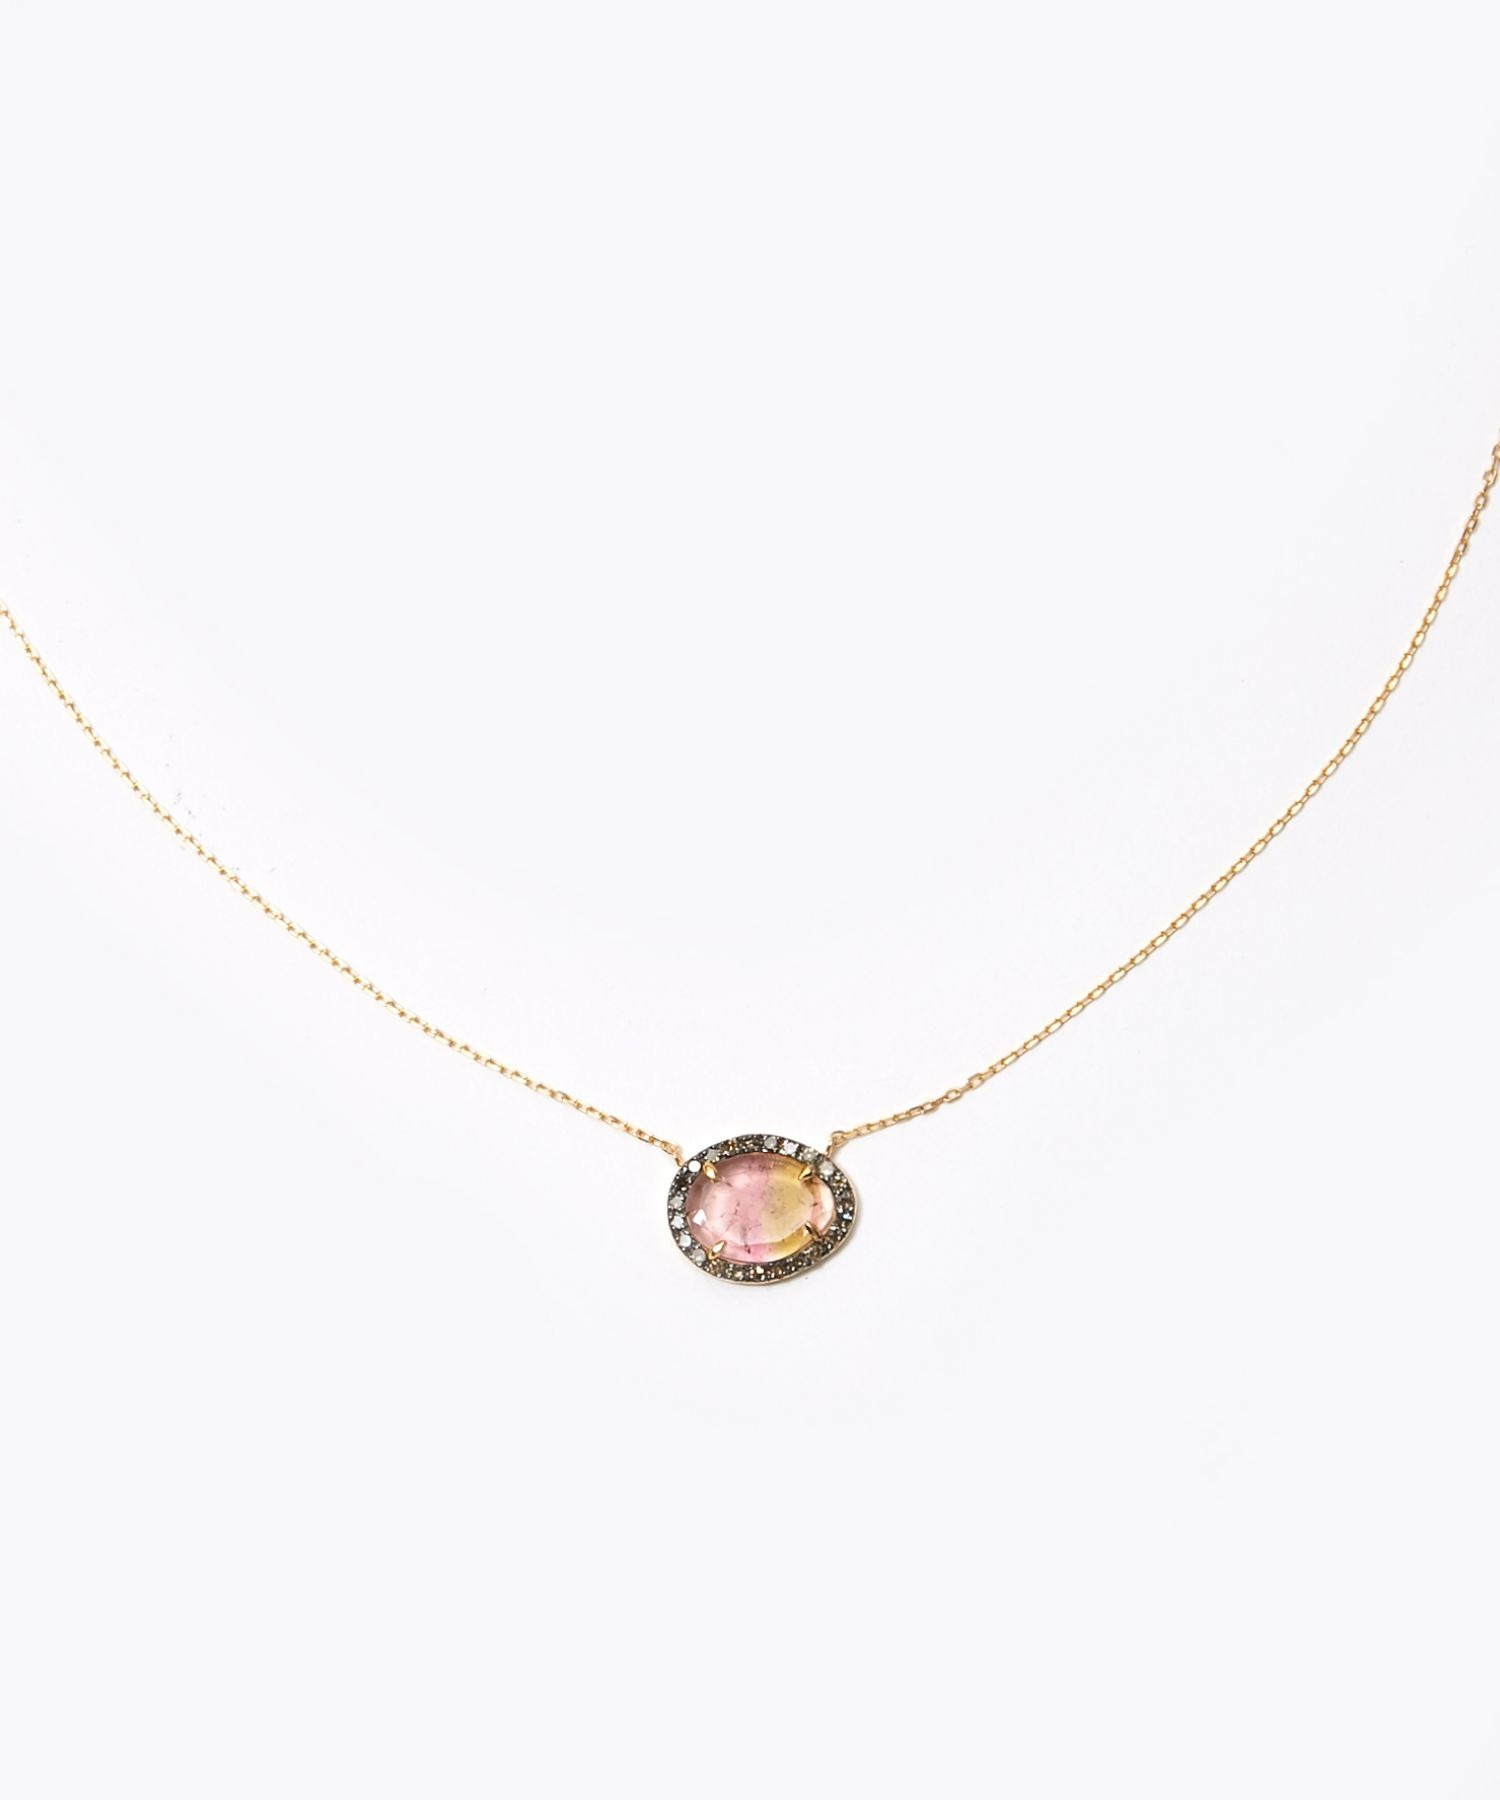 [elafonisi] tourmaline pave diamonds necklace